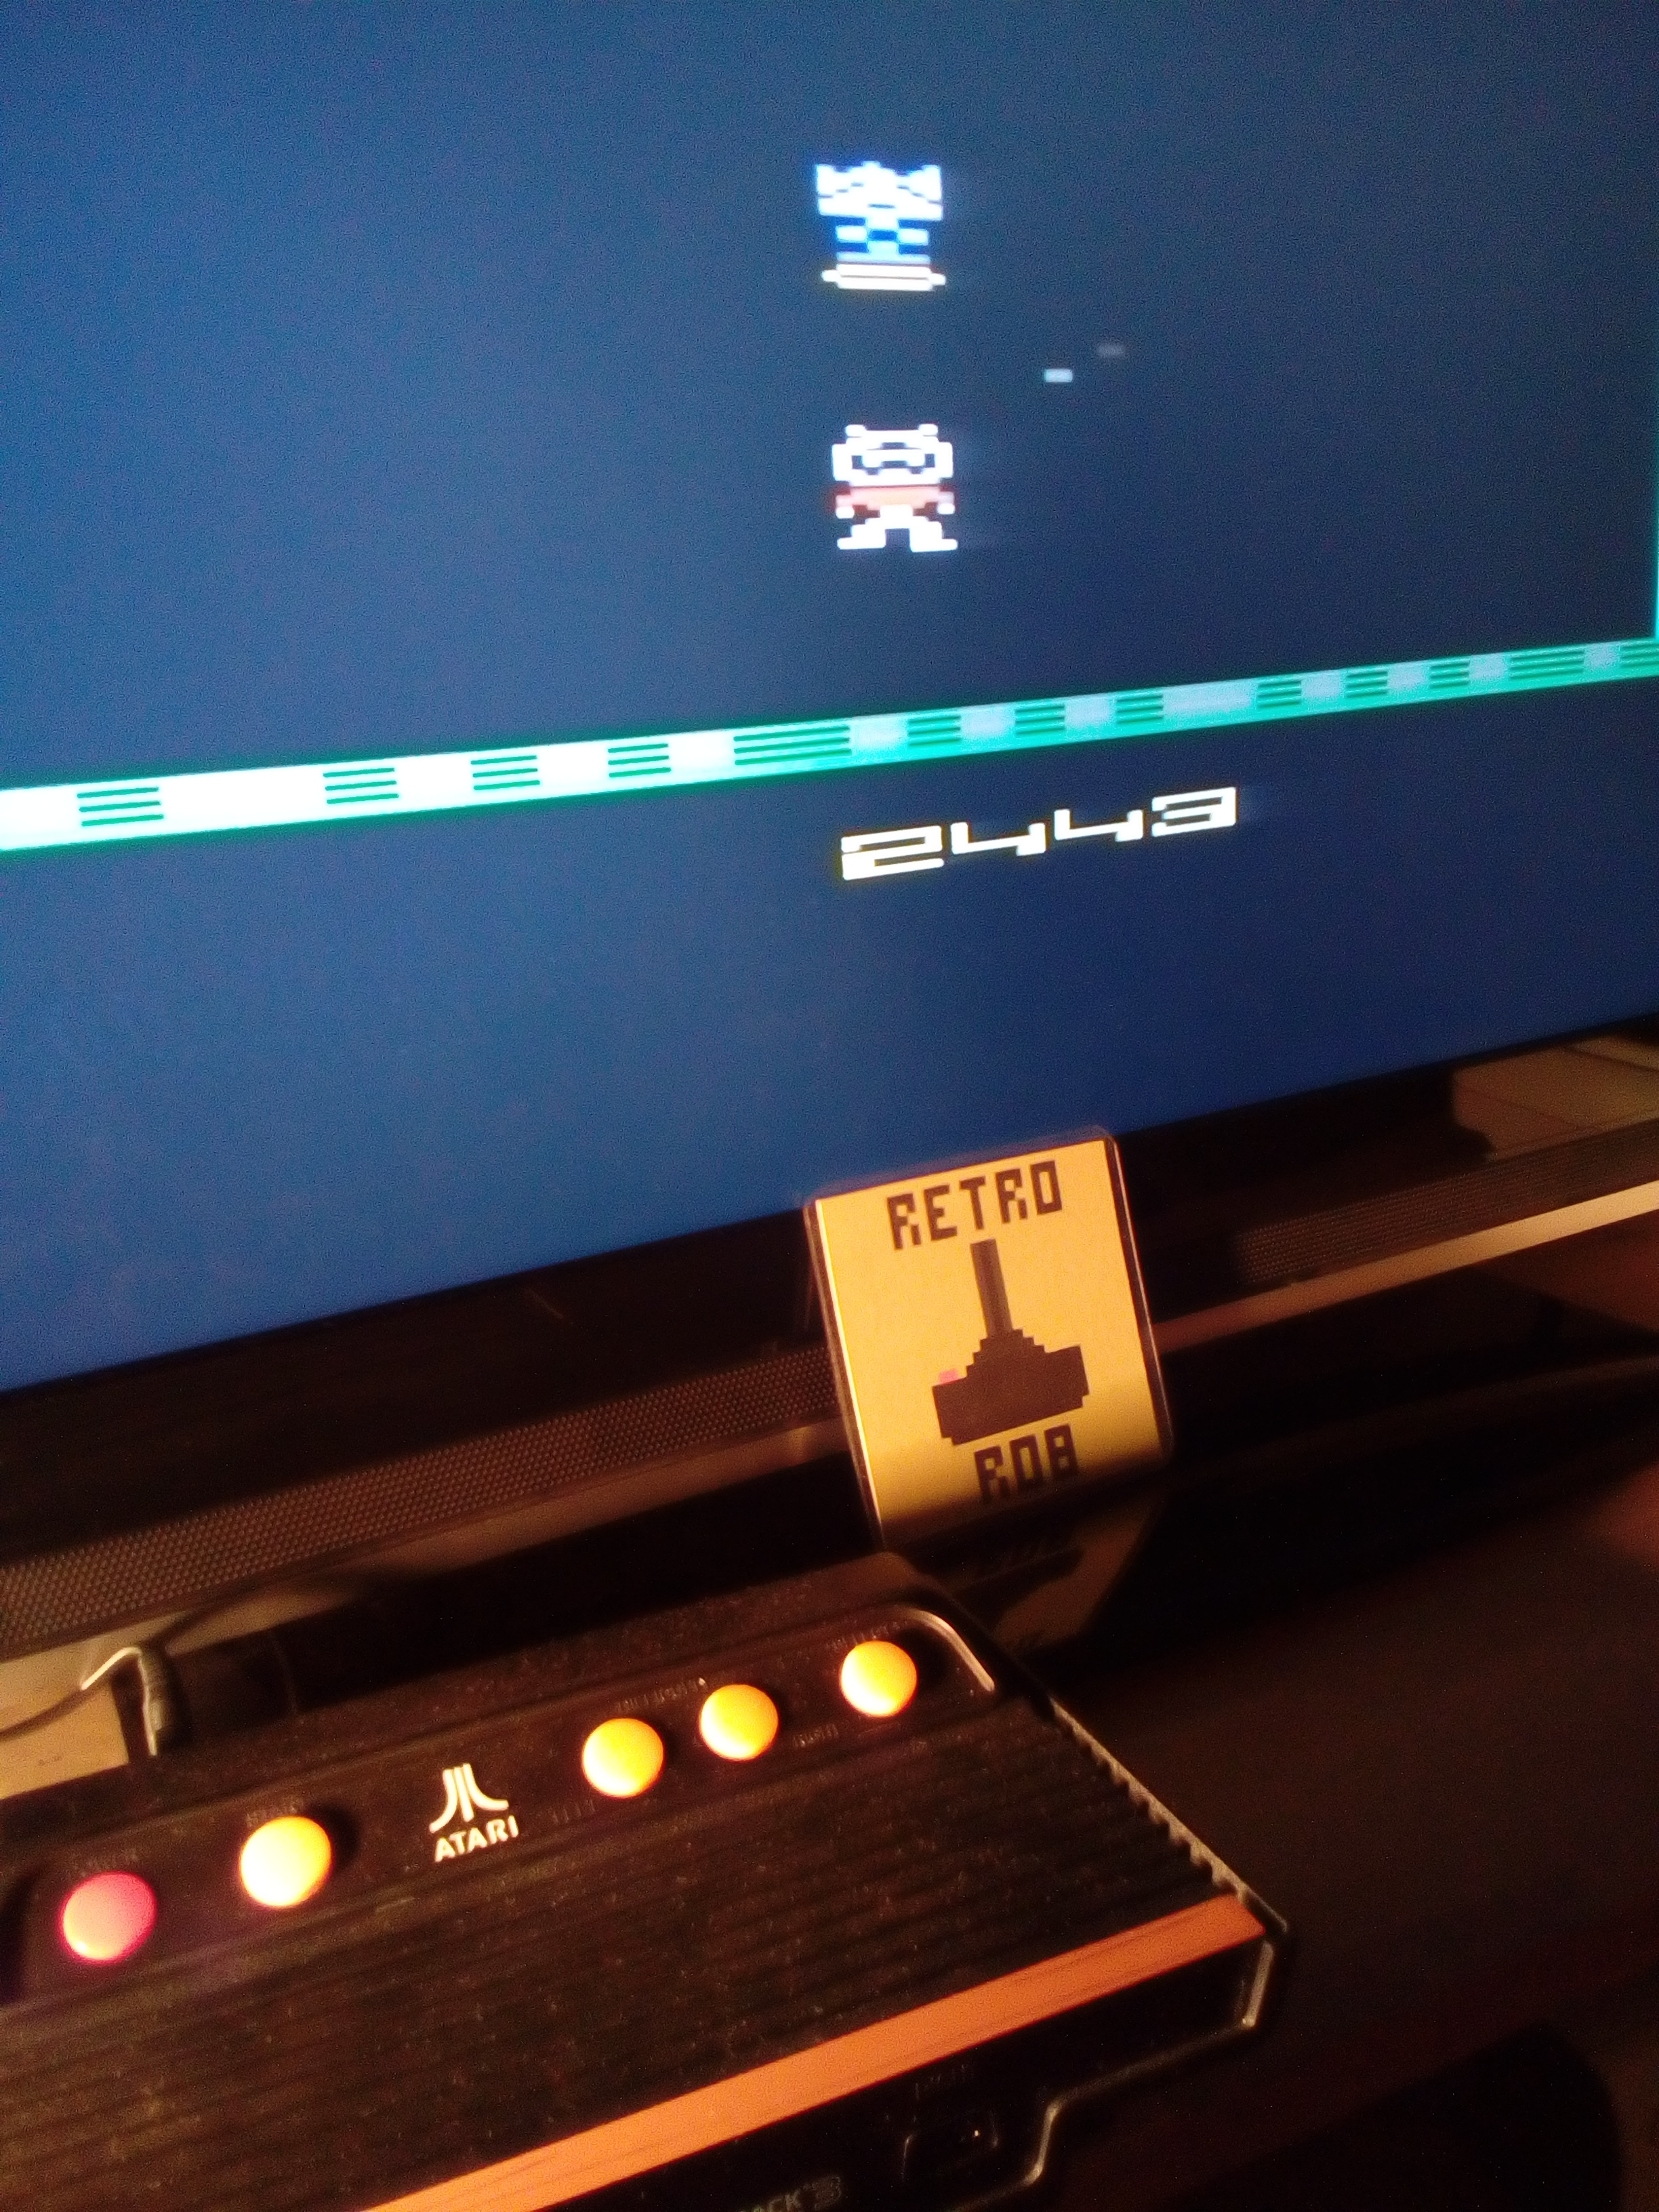 RetroRob: Saboteur (Atari 2600 Emulated Novice/B Mode) 2,443 points on 2019-07-06 02:28:22